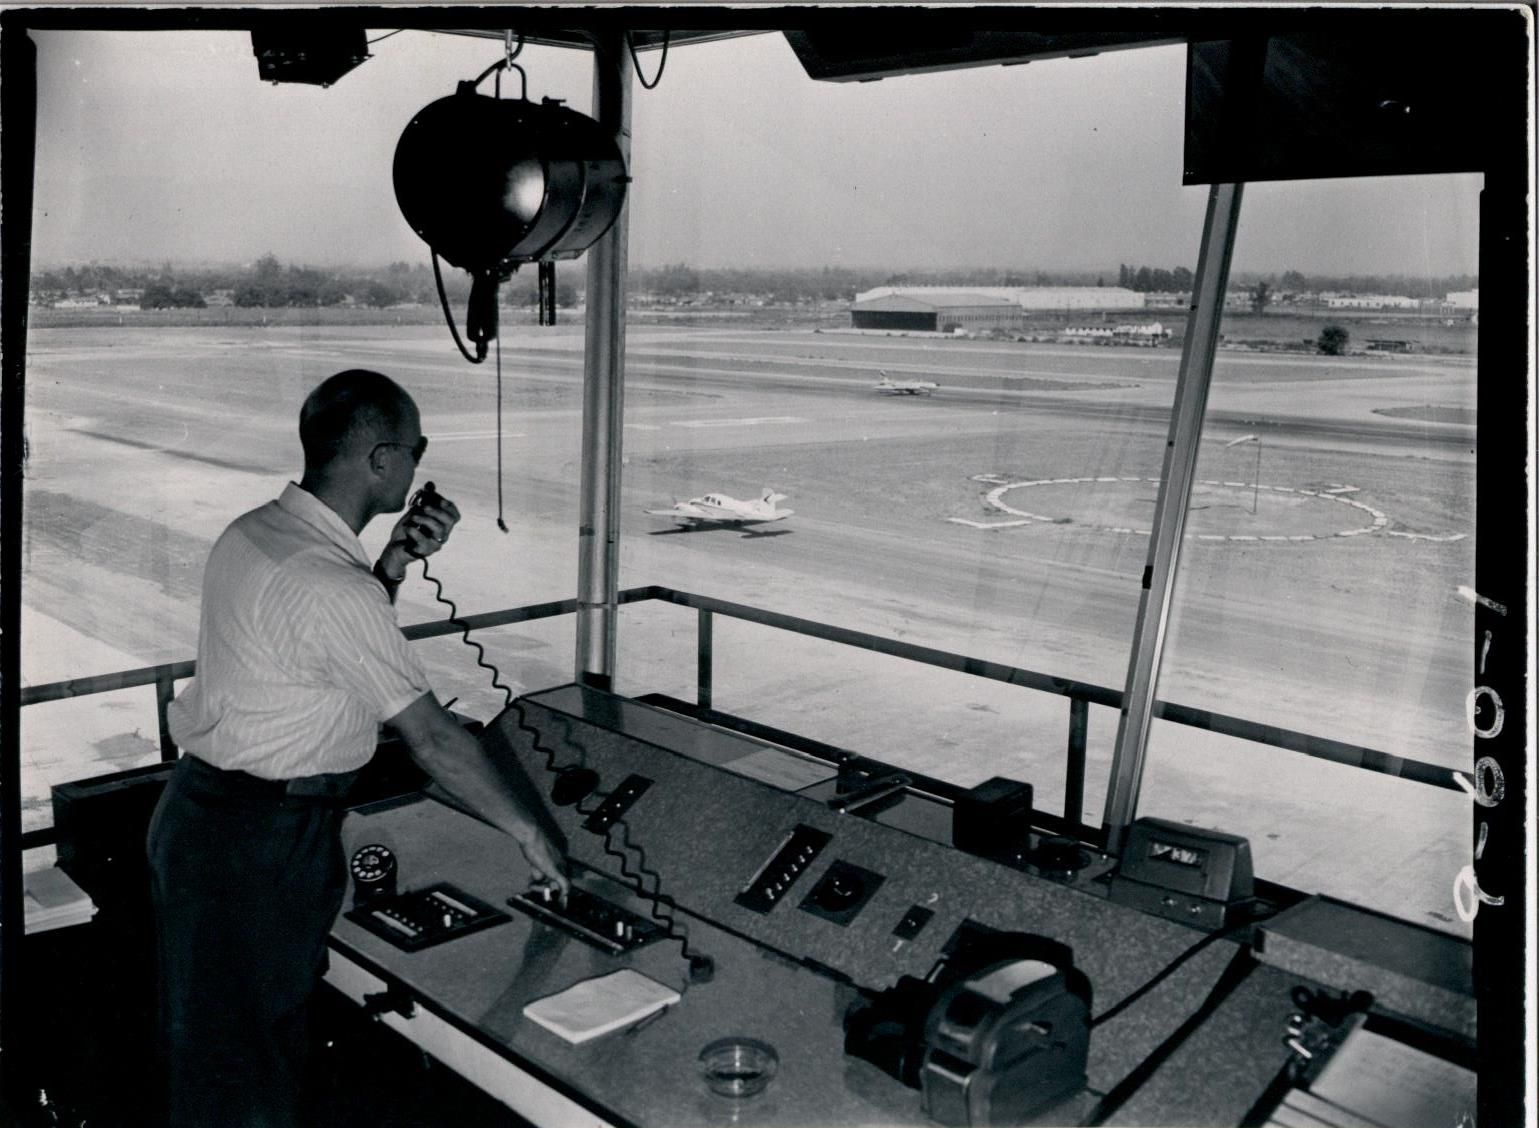 Go back in time to 1955 for a peek at the air traffic